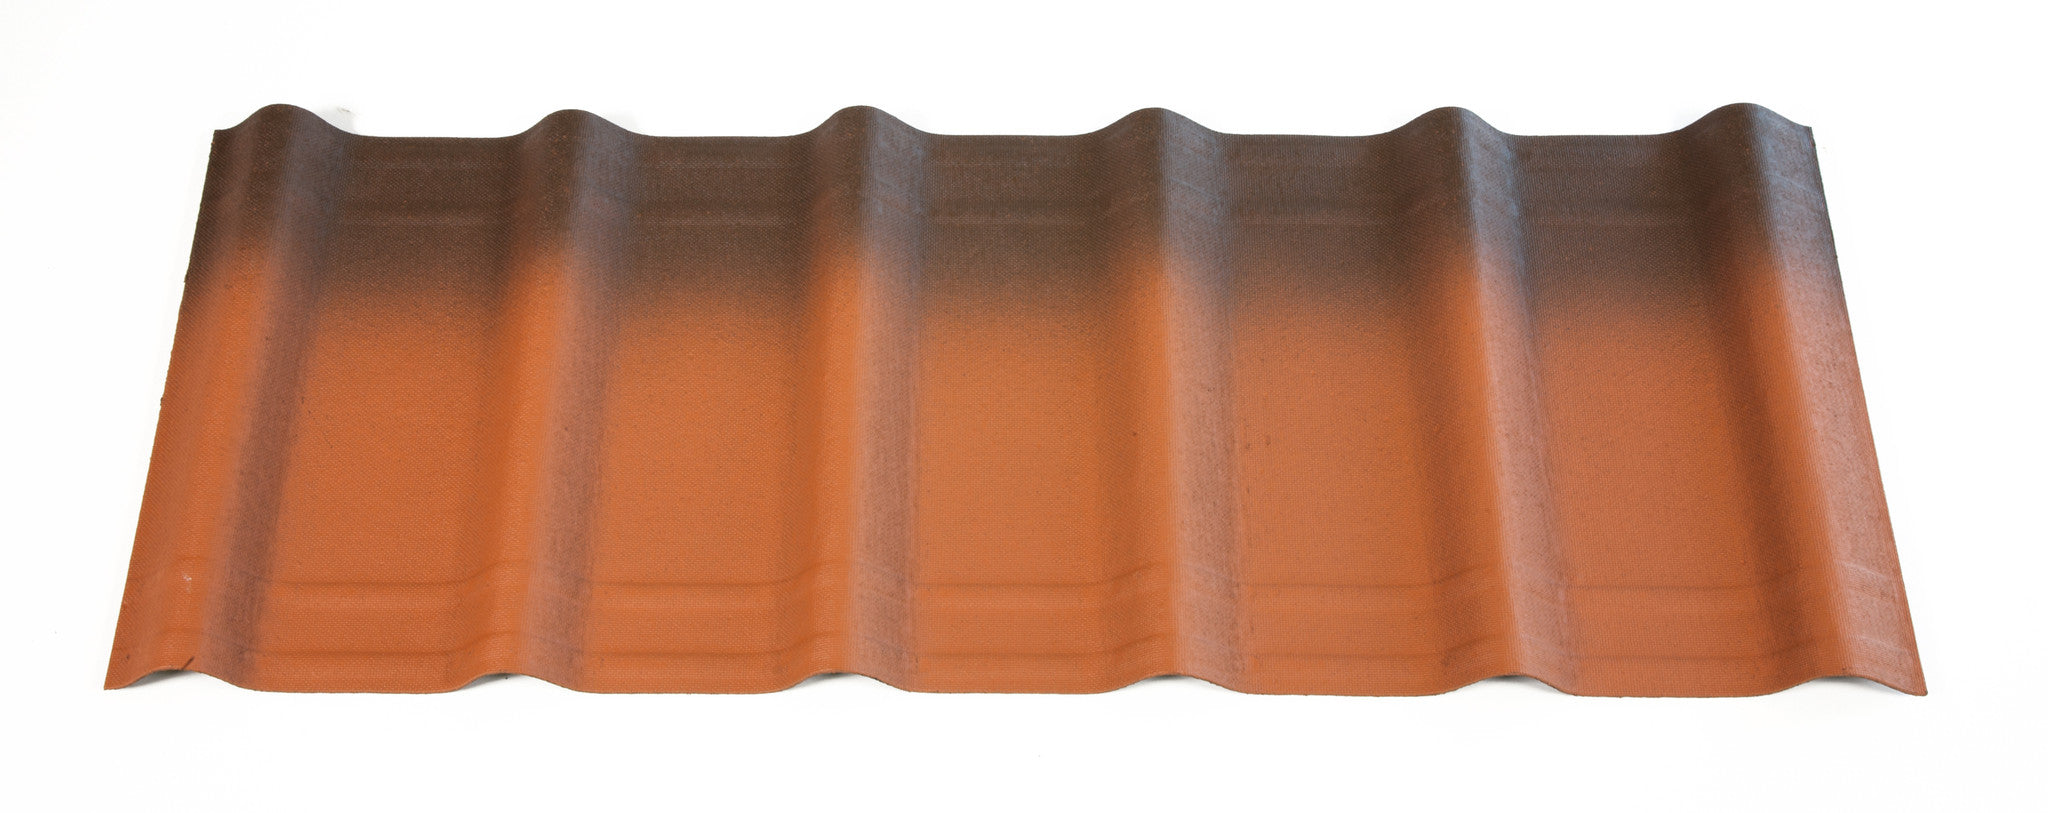 ONDUVILLA Shingles 1 Pack of 10 Shingles - Terracotta